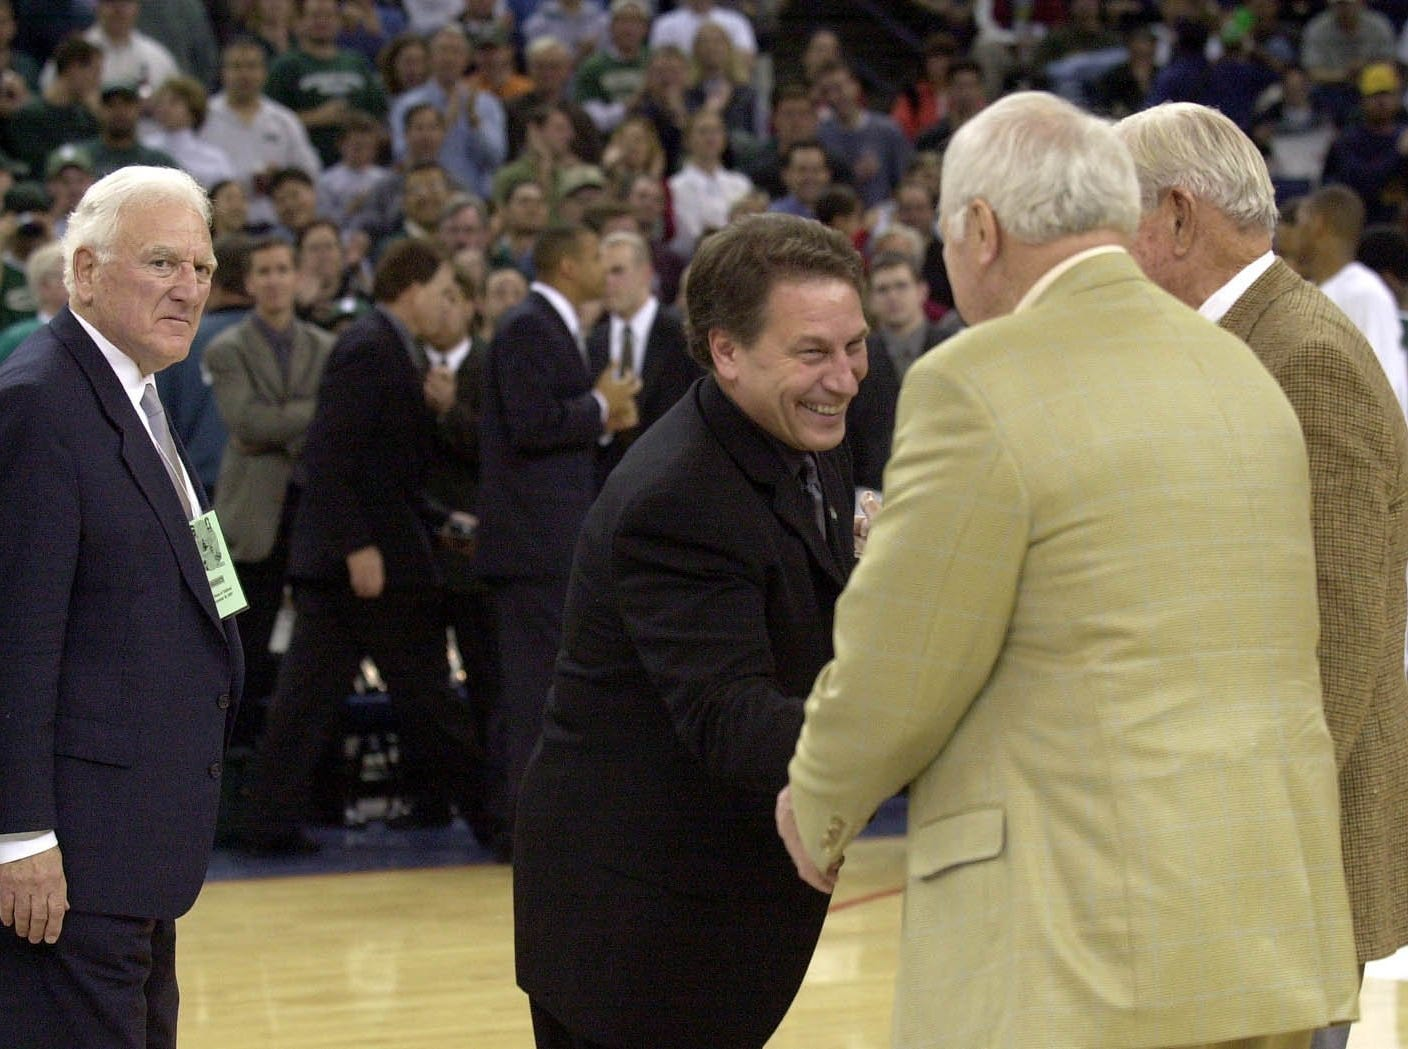 Current MSU basketball coach Tom Izzo, center, shakes hands with former MSU coaches Gus Ganakas, Jud Heathcote and Pete Newell, left to right, in Oakland, Ca, Saturday night before the Spartans' basketball game against Stanford in the Pete Newell Challenge.